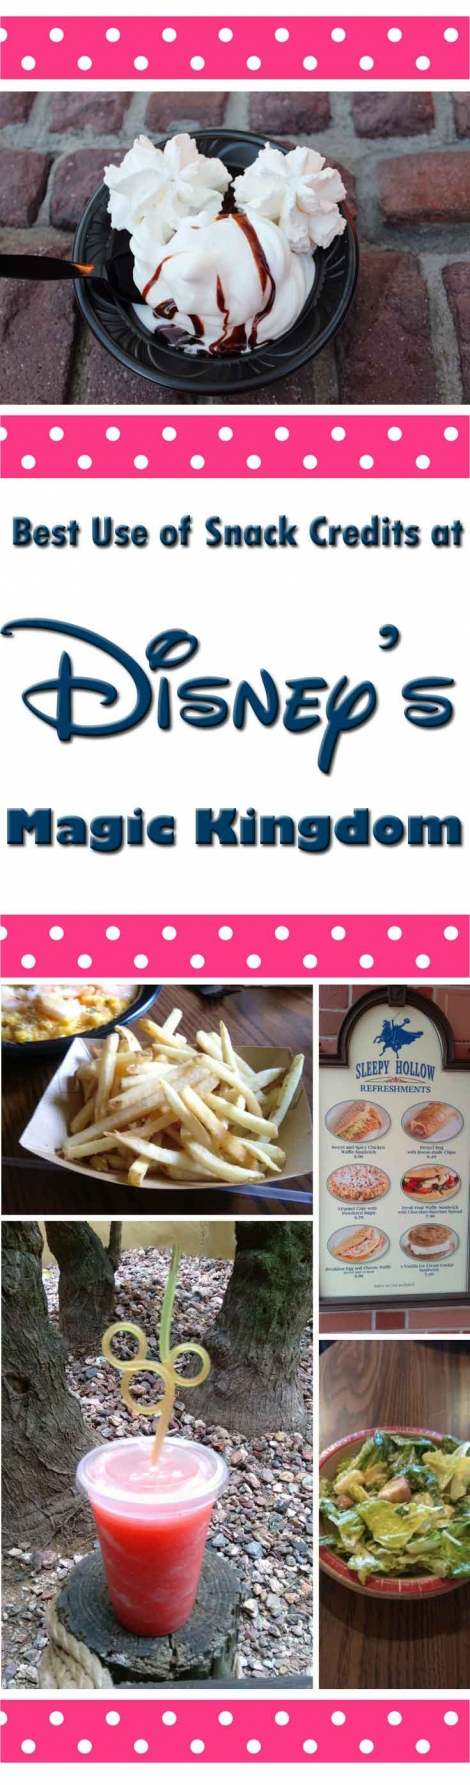 best-use-of-snack-credits-at-Disney\'s-Magic-Kingdom